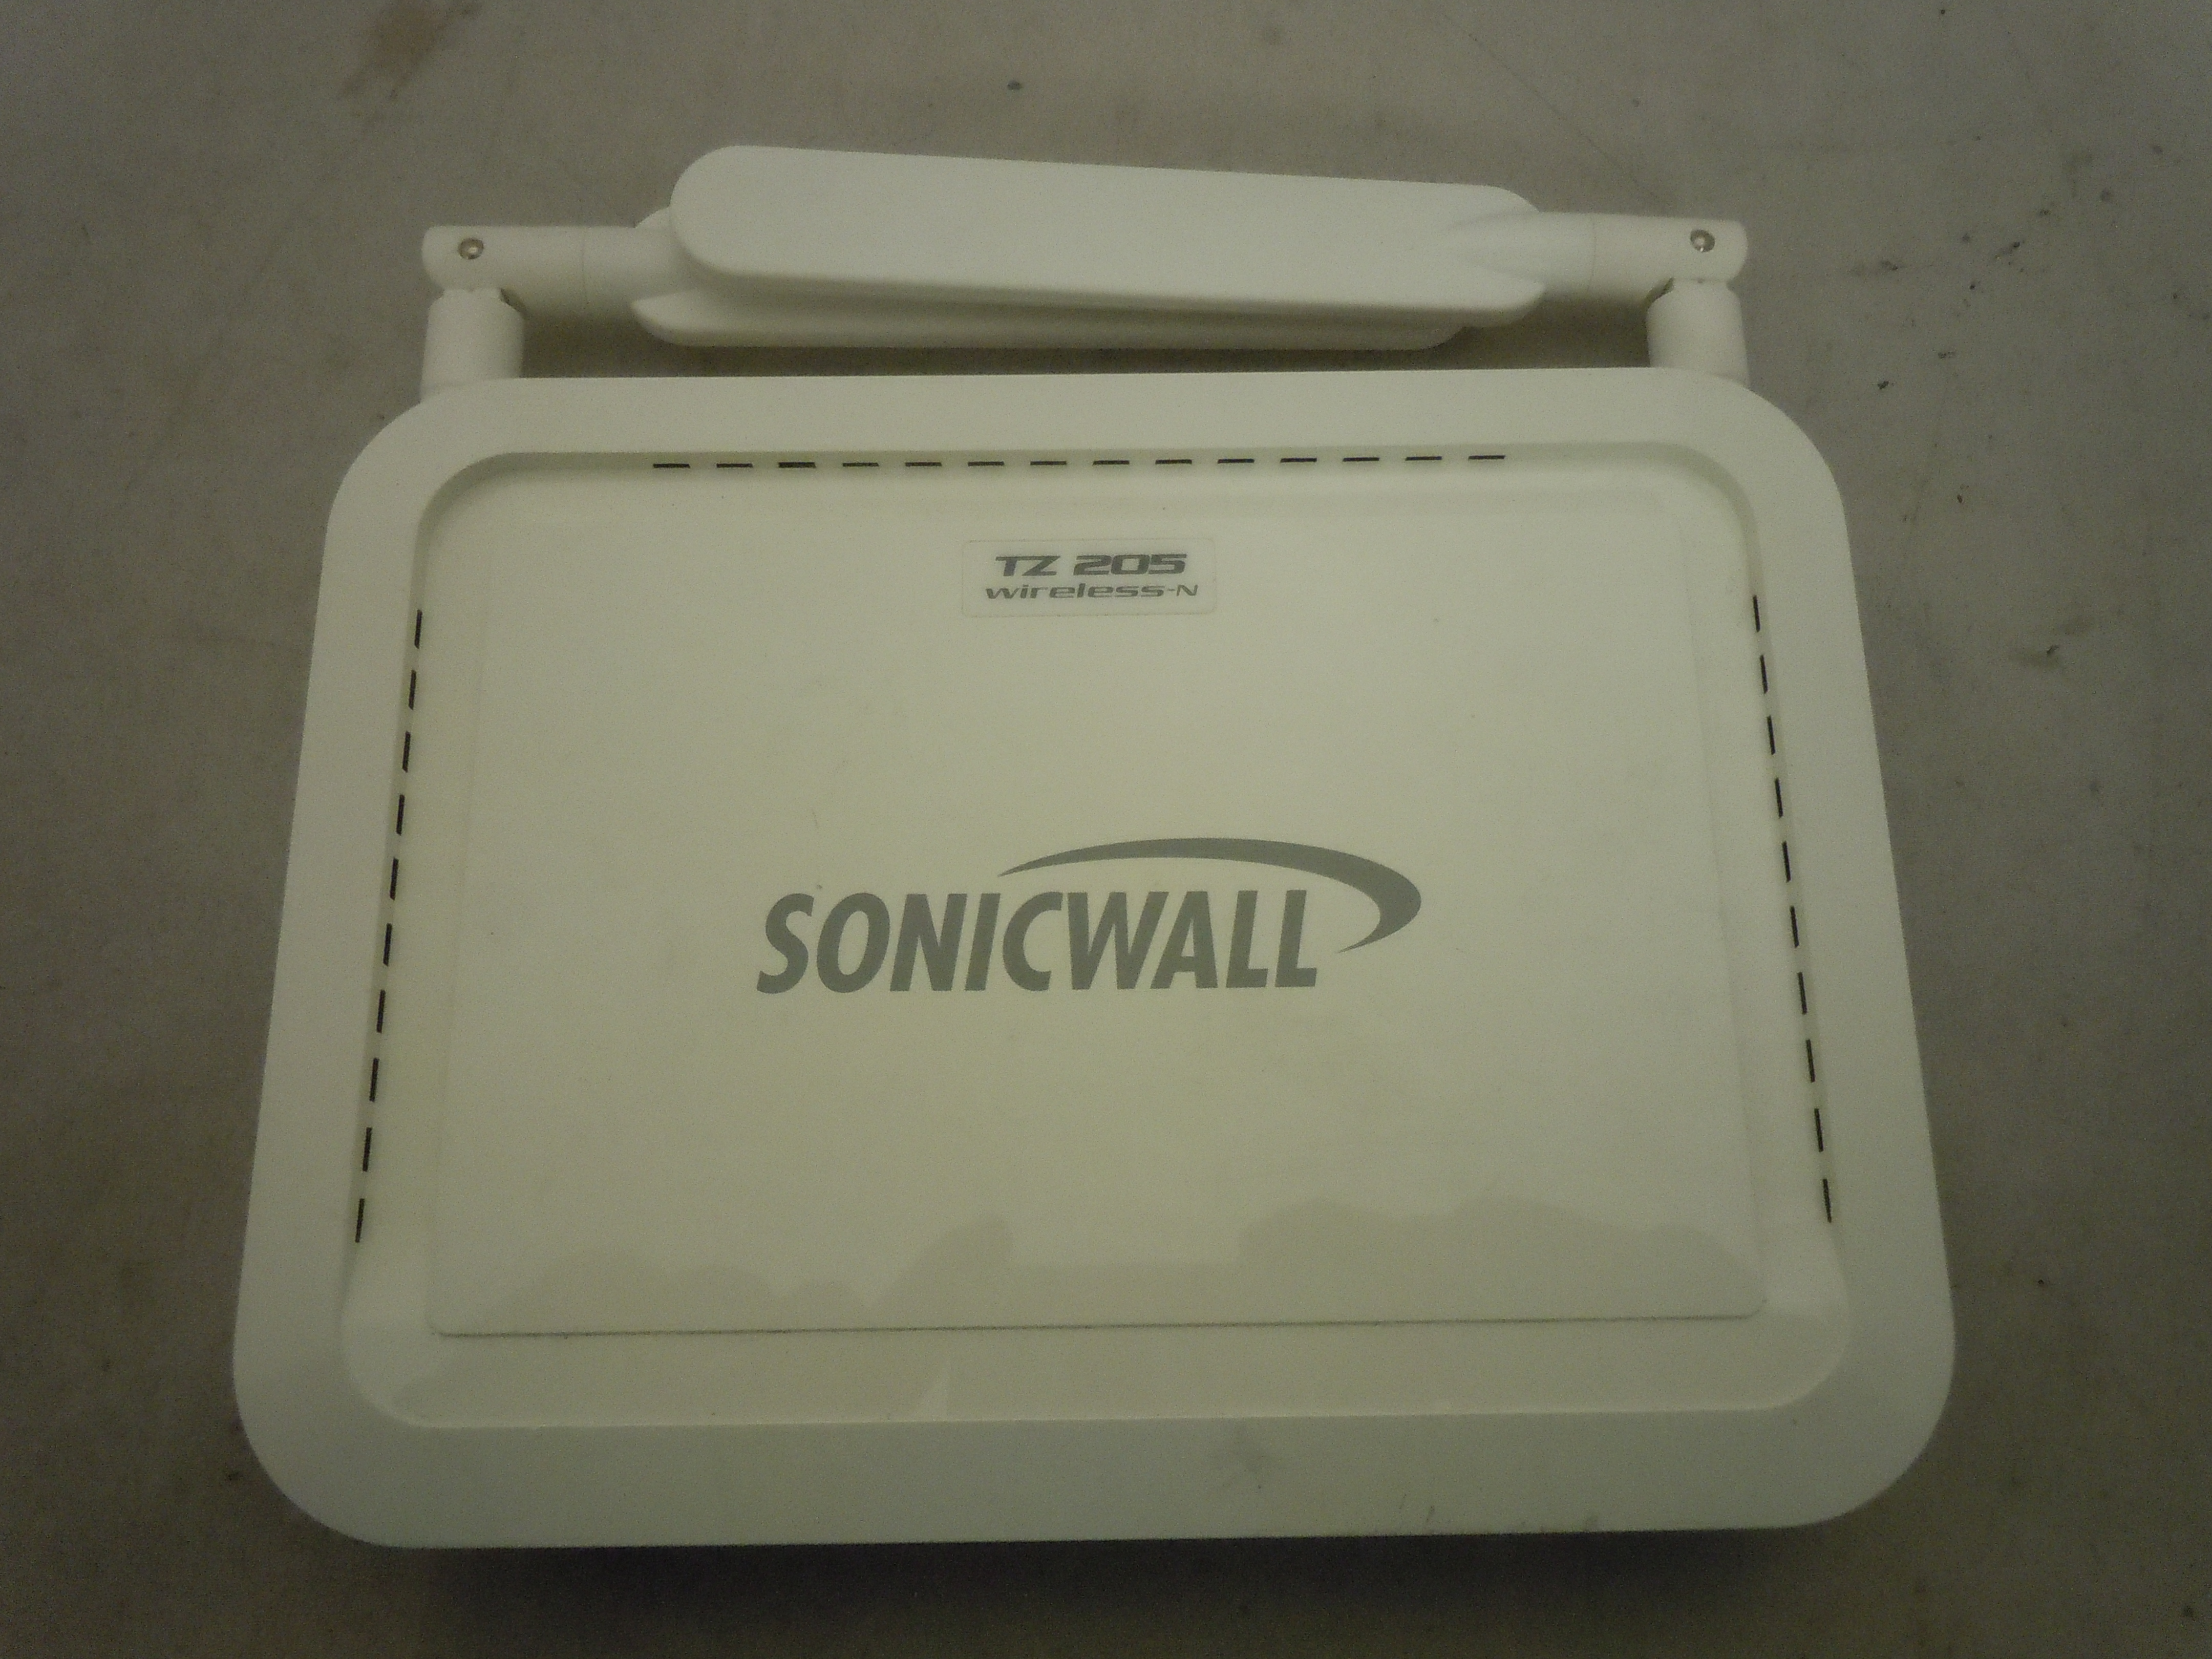 Home Network Security Appliance Sonicwall Tz 205w Wireless Network Security Appliance Ebay